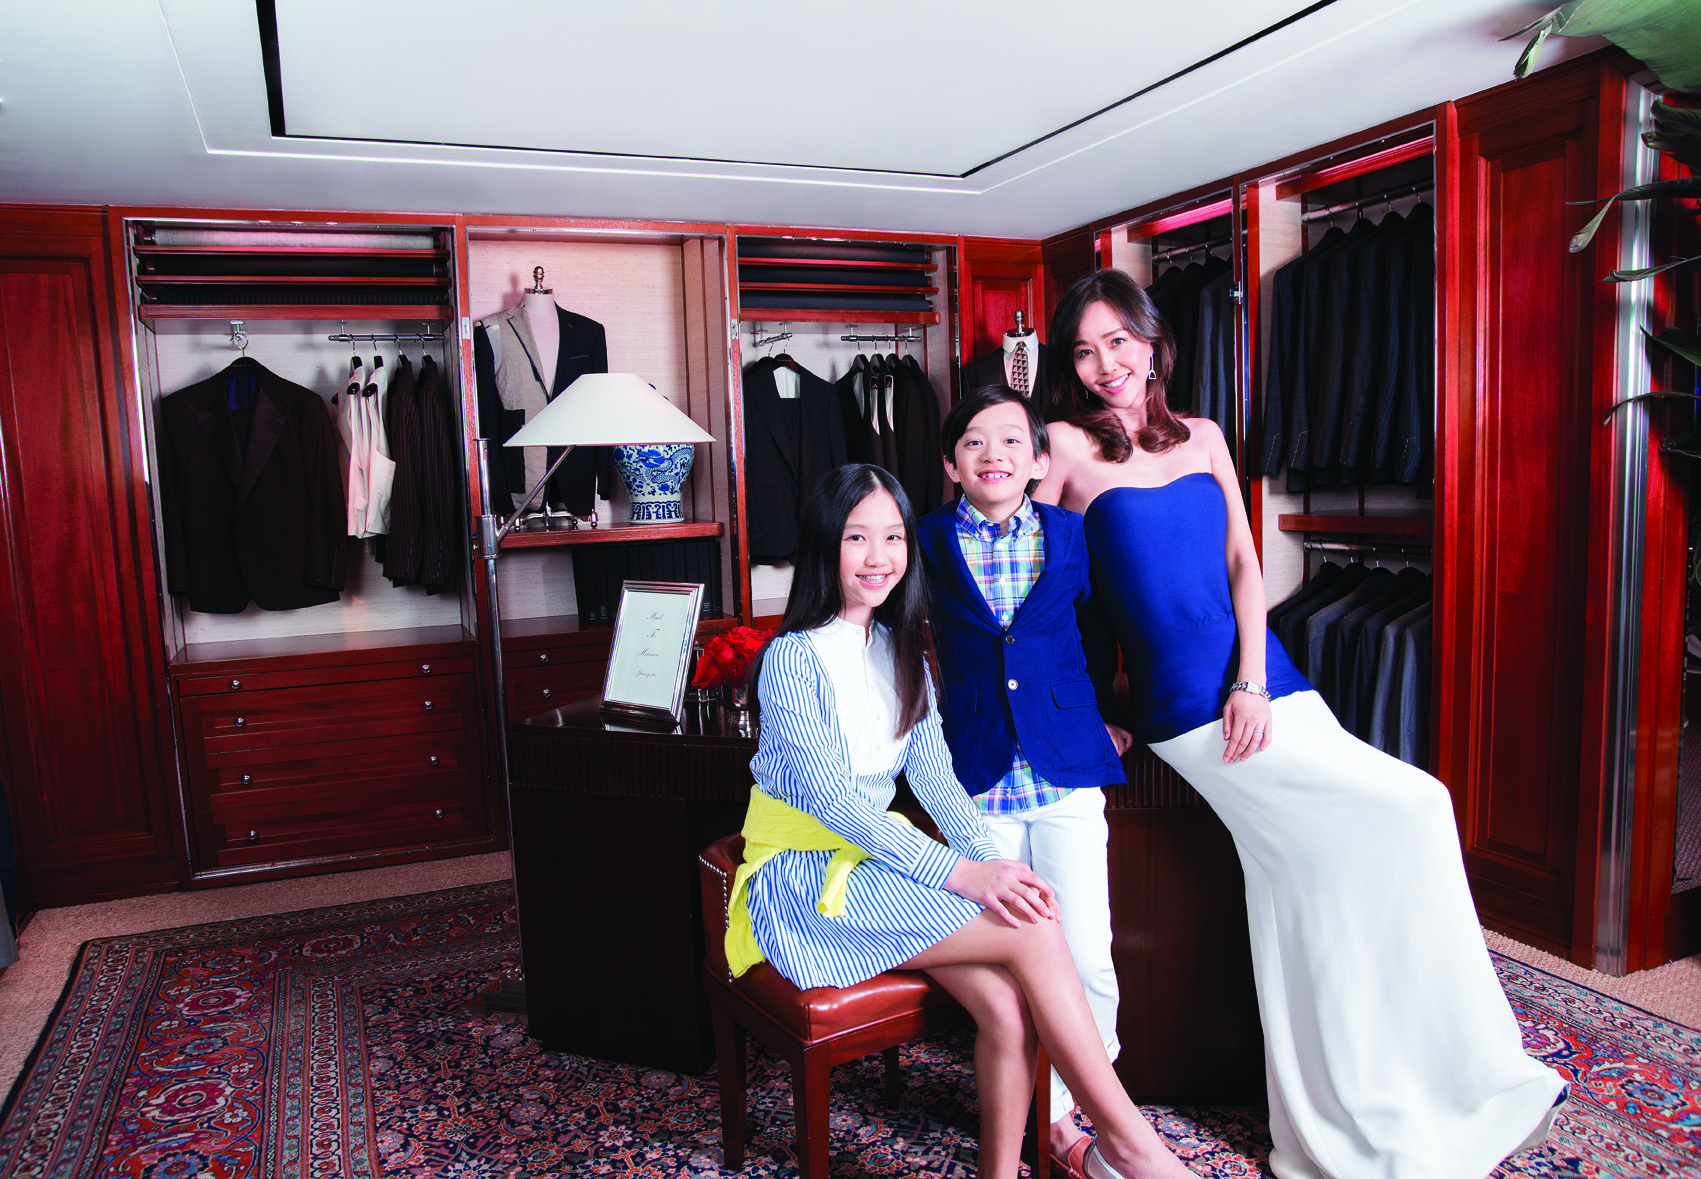 Angie Ting, Kirsten Ting and Gratian Ting all in Ralph Lauren